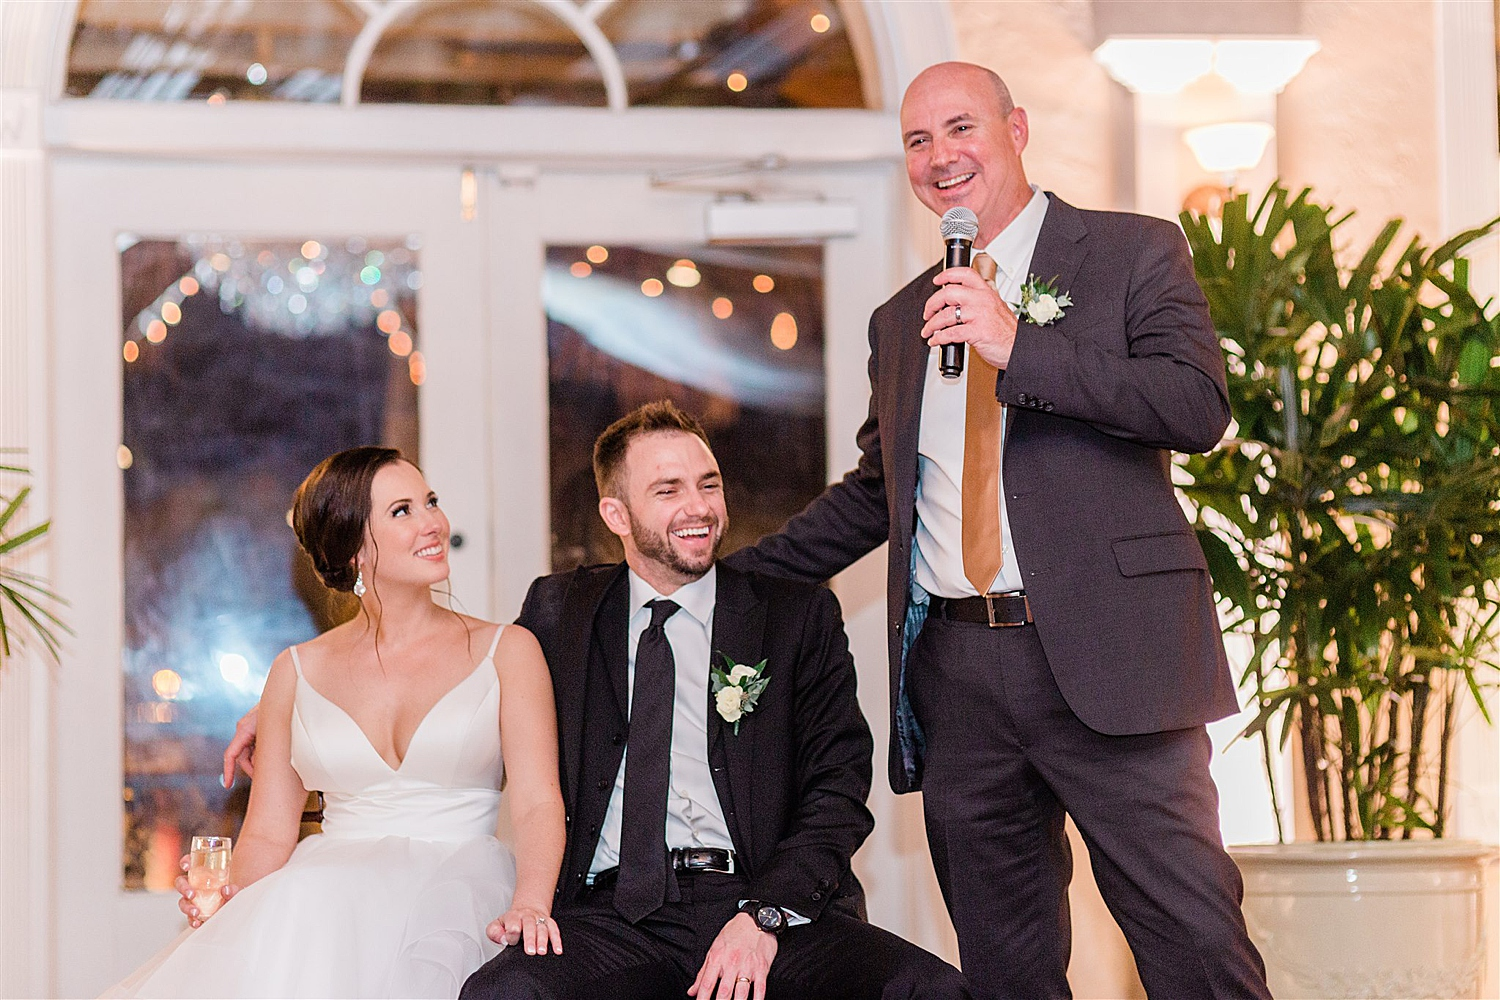 Bride and Groom laugh while bride's father gives a toast